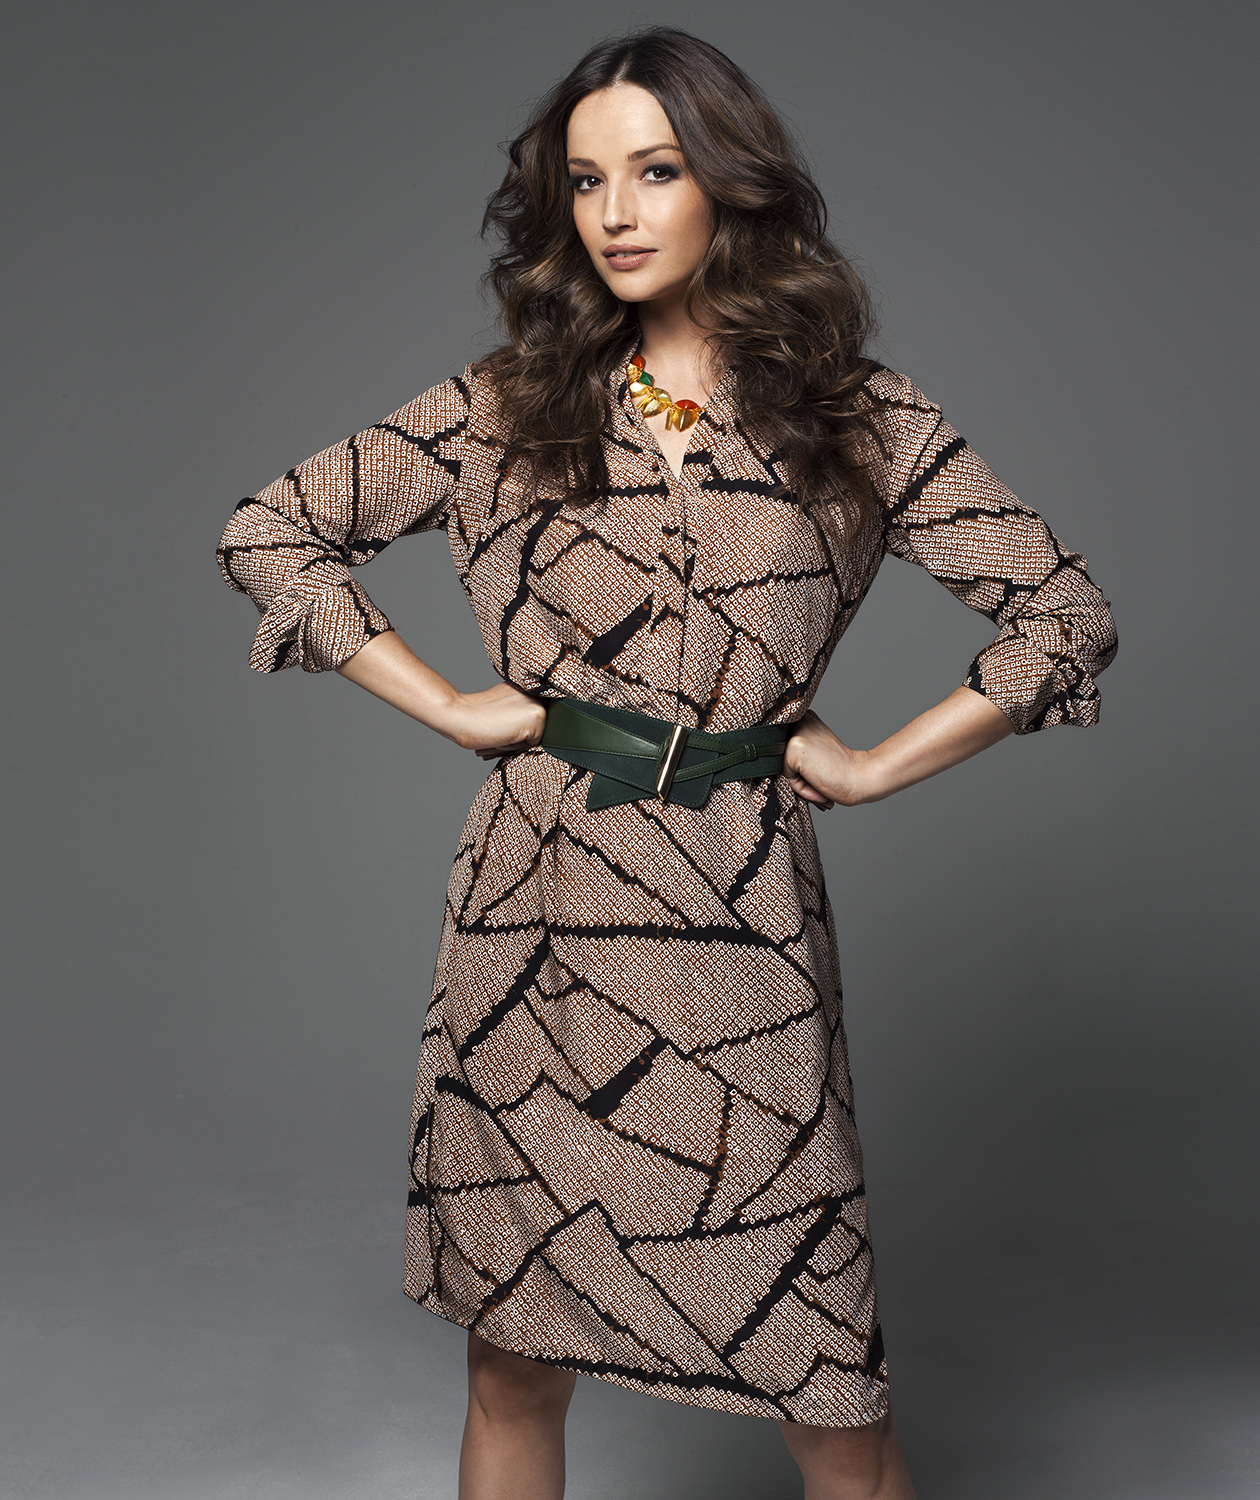 Model wearing brown patterned dress with green belt